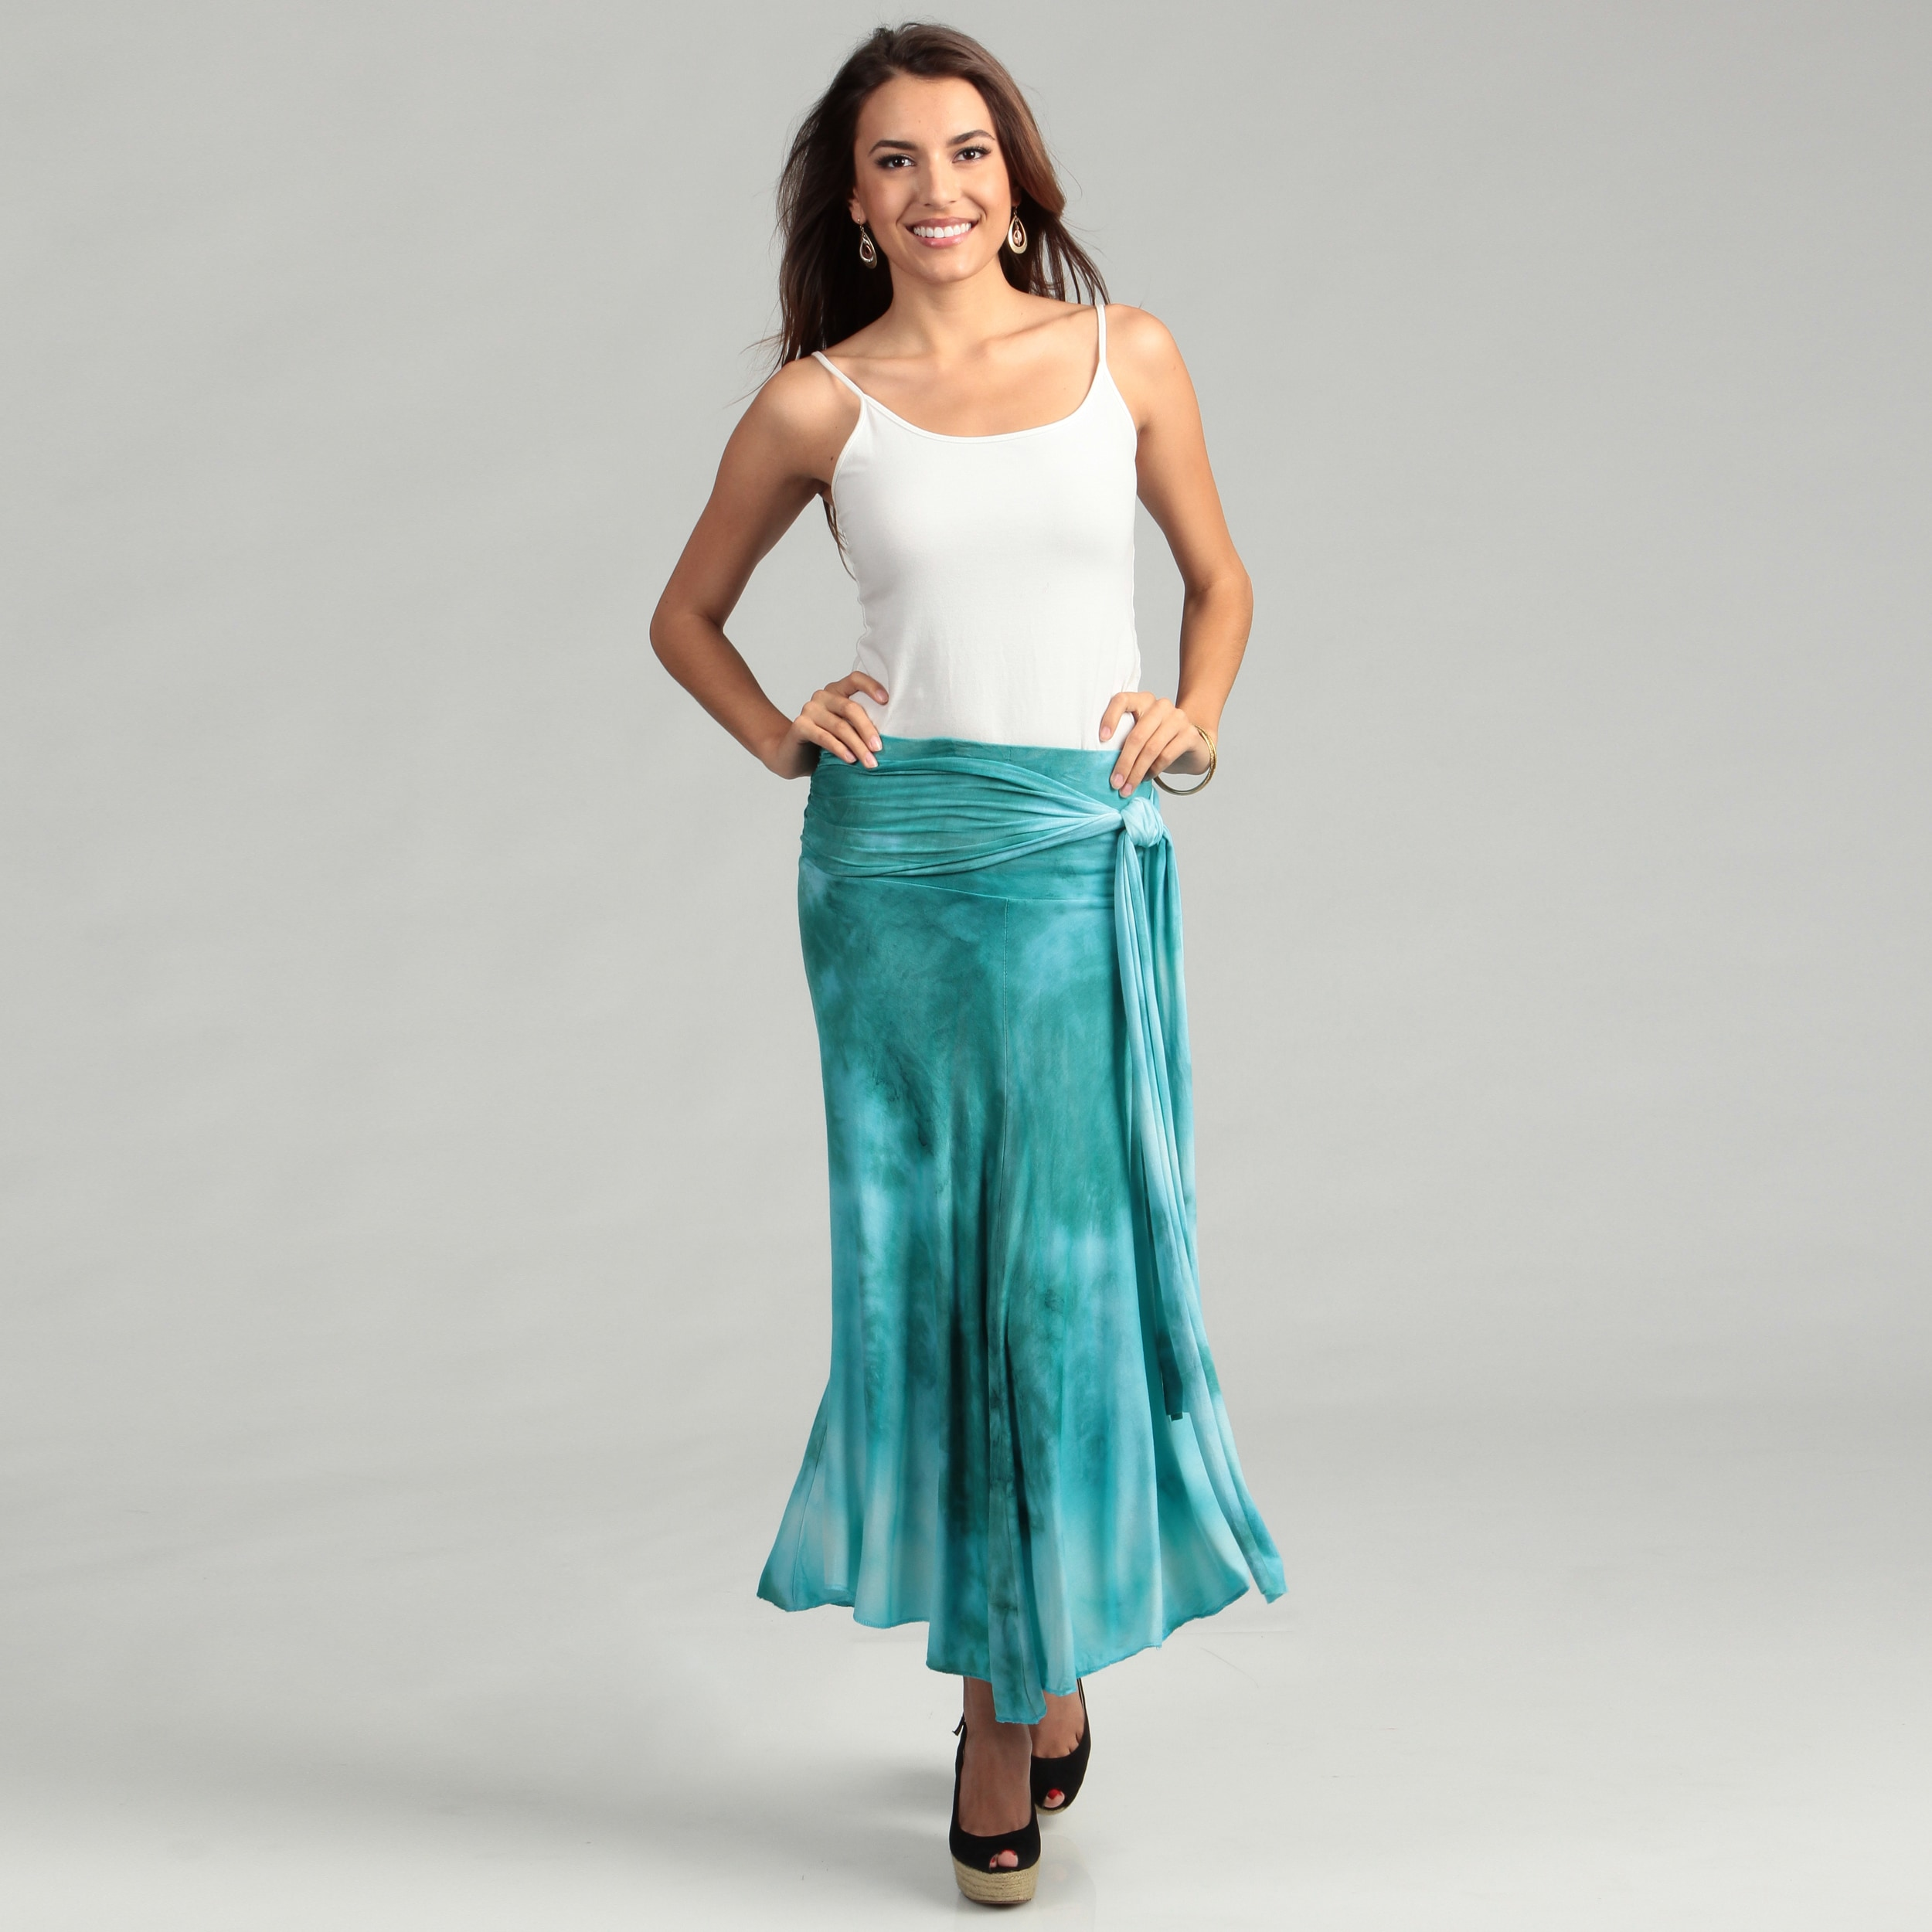 2e6cdb3402 Shop Elan Women's Aqua Tie-dye Convertible 8-way Dress/ Skirt - Free  Shipping On Orders Over $45 - Overstock - 6707205